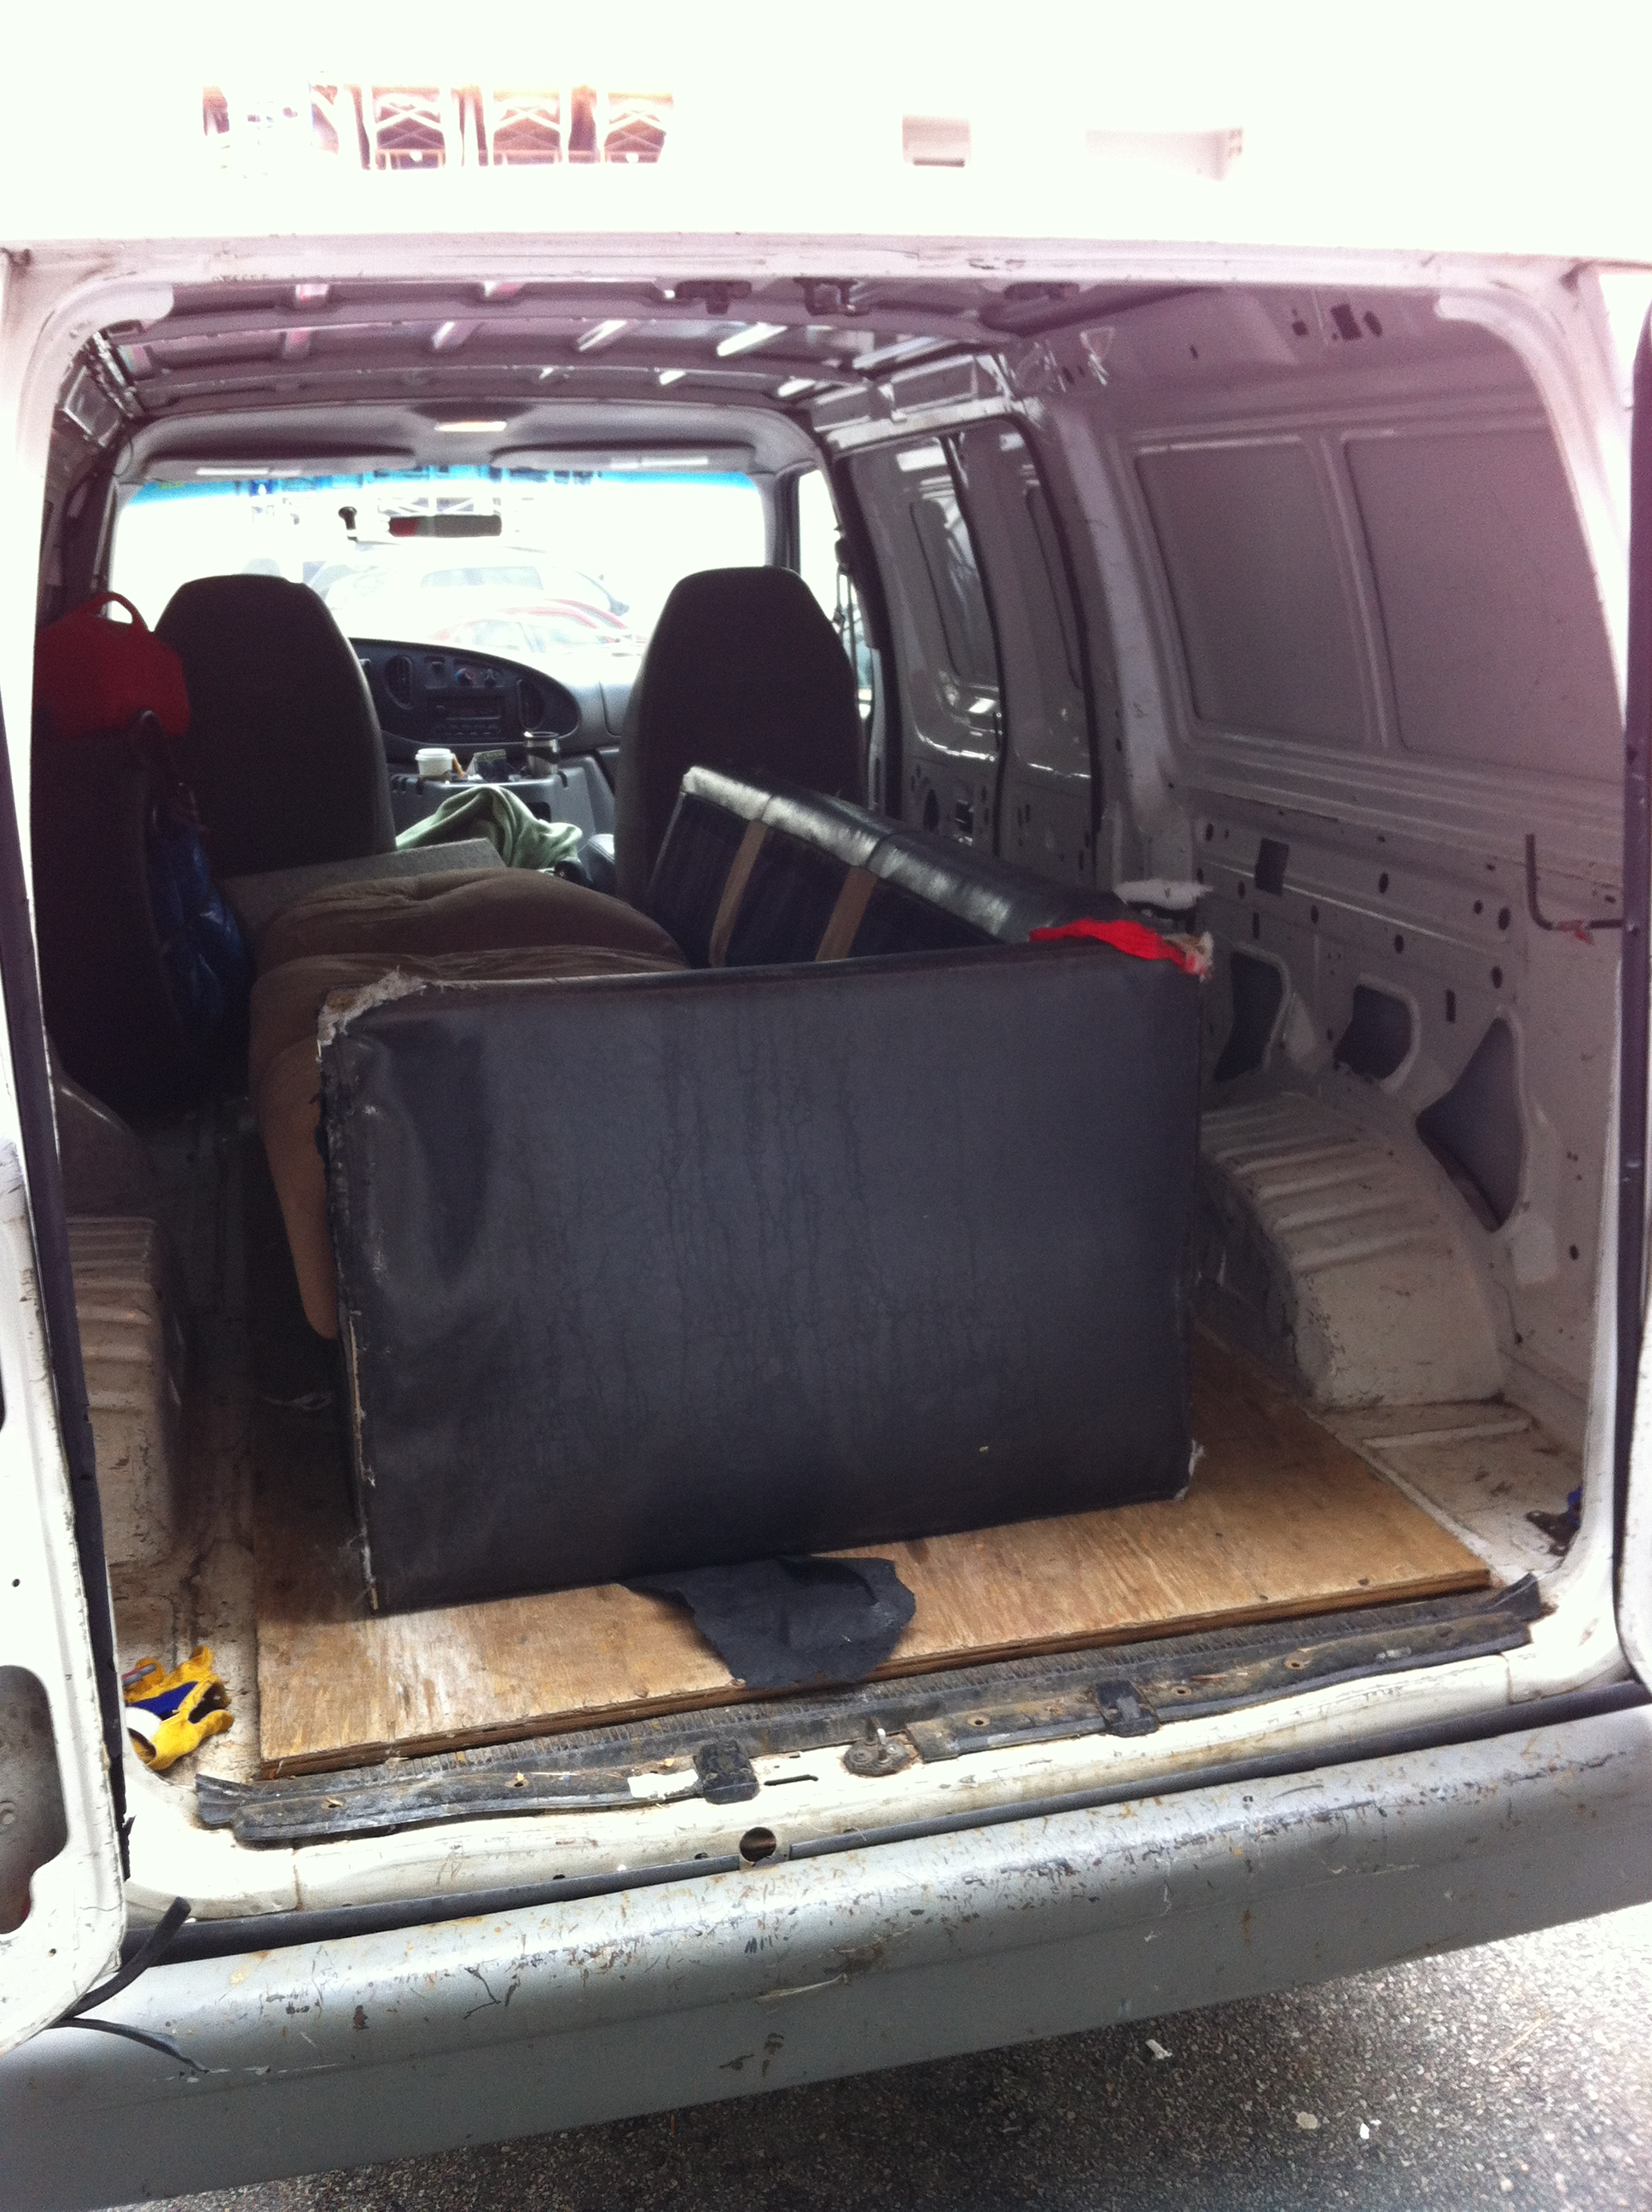 Couch Removal And Disposal East Vancouver Sams Small Moves - Sofa disposal